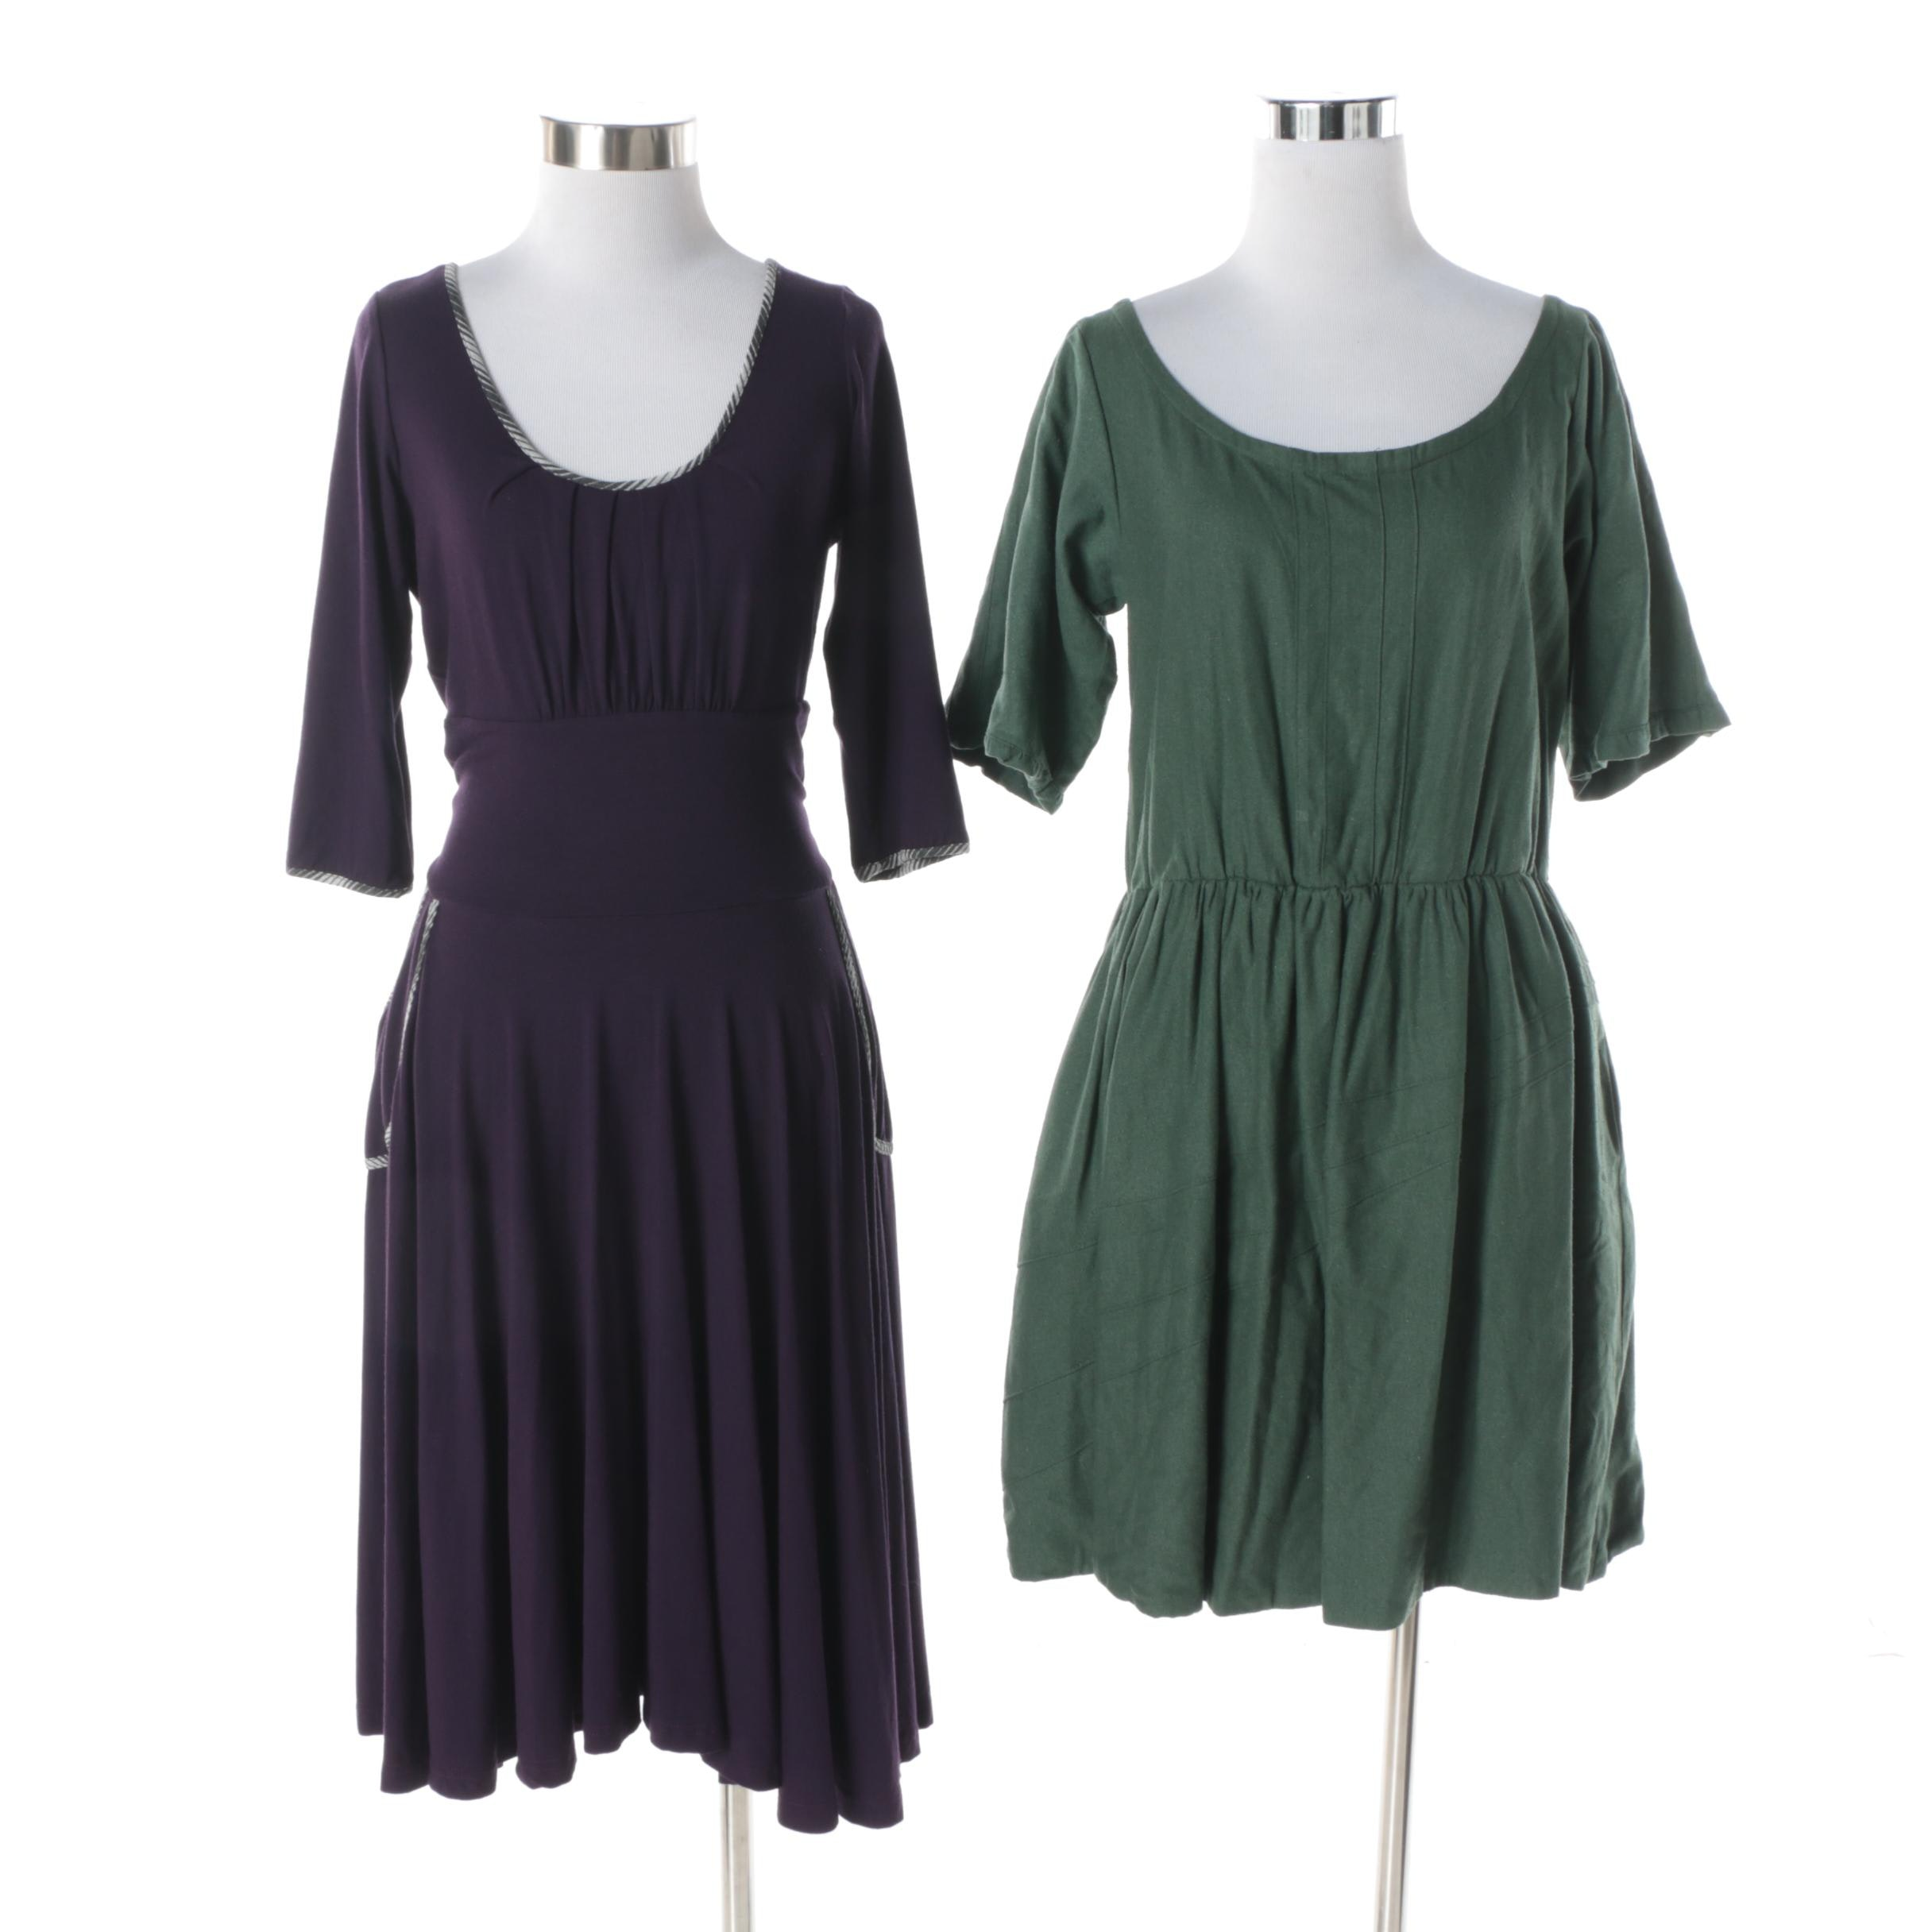 Lara Miller Green Vegan Silk Dress and Squasht by Les Purple Hemp Dress